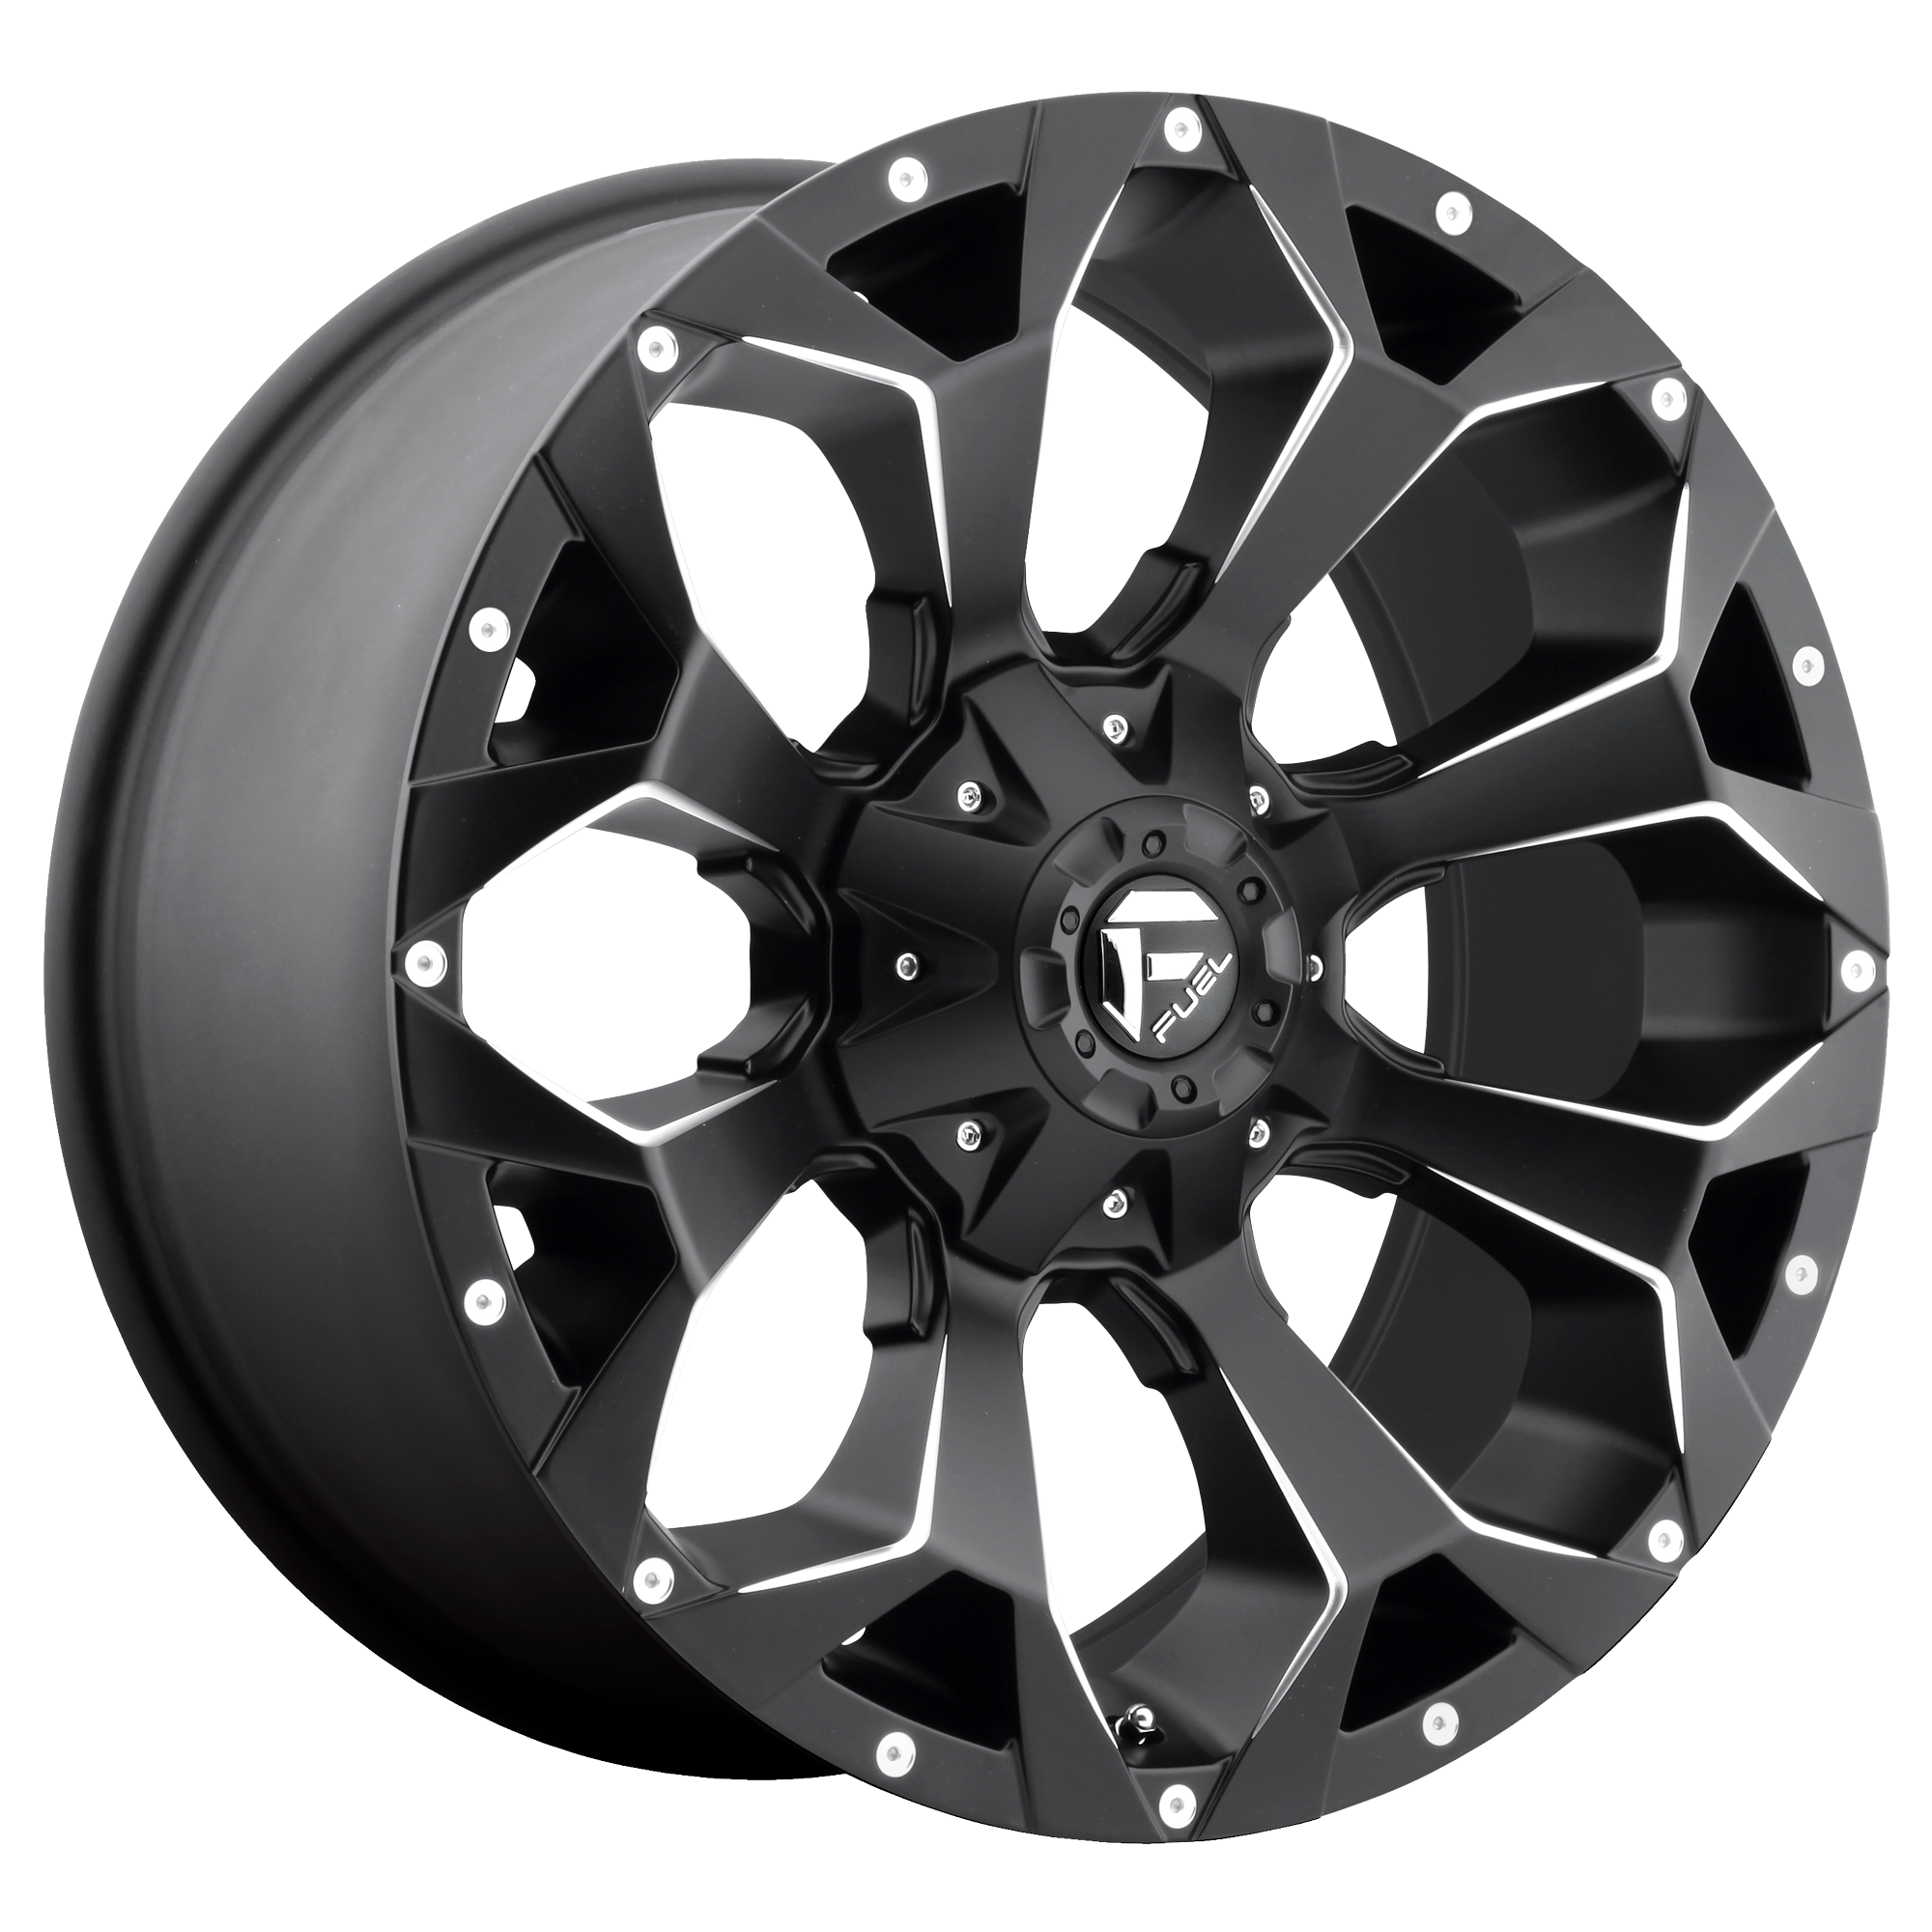 Assault Matte Black 22x12 5x5.5, 5x150 -44mm